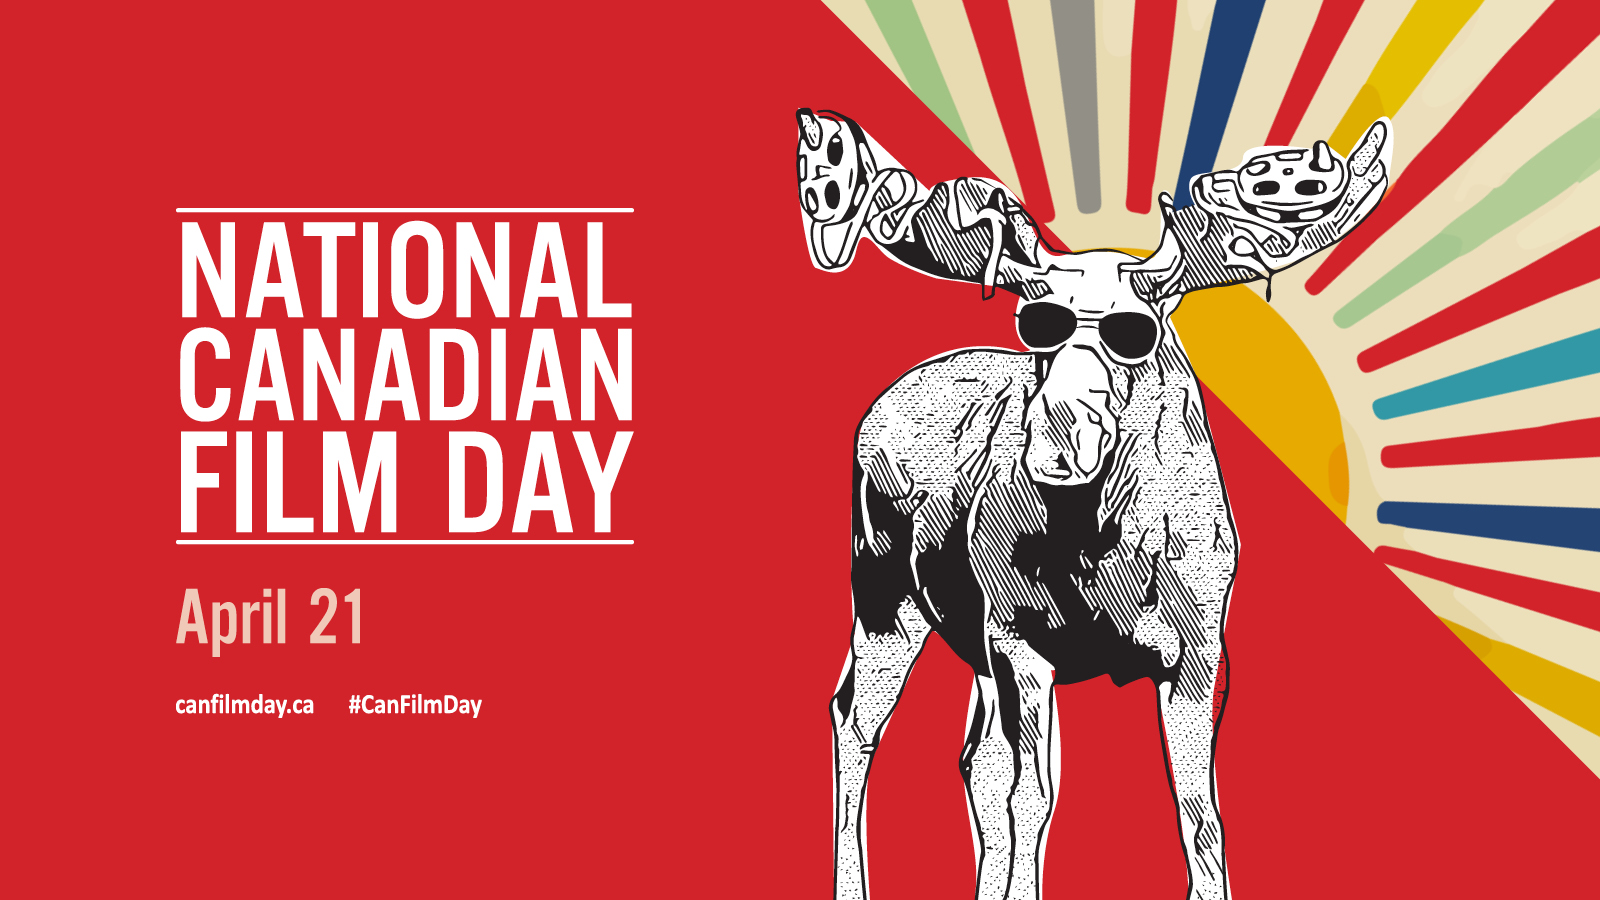 National Canadian Film Day – April 21